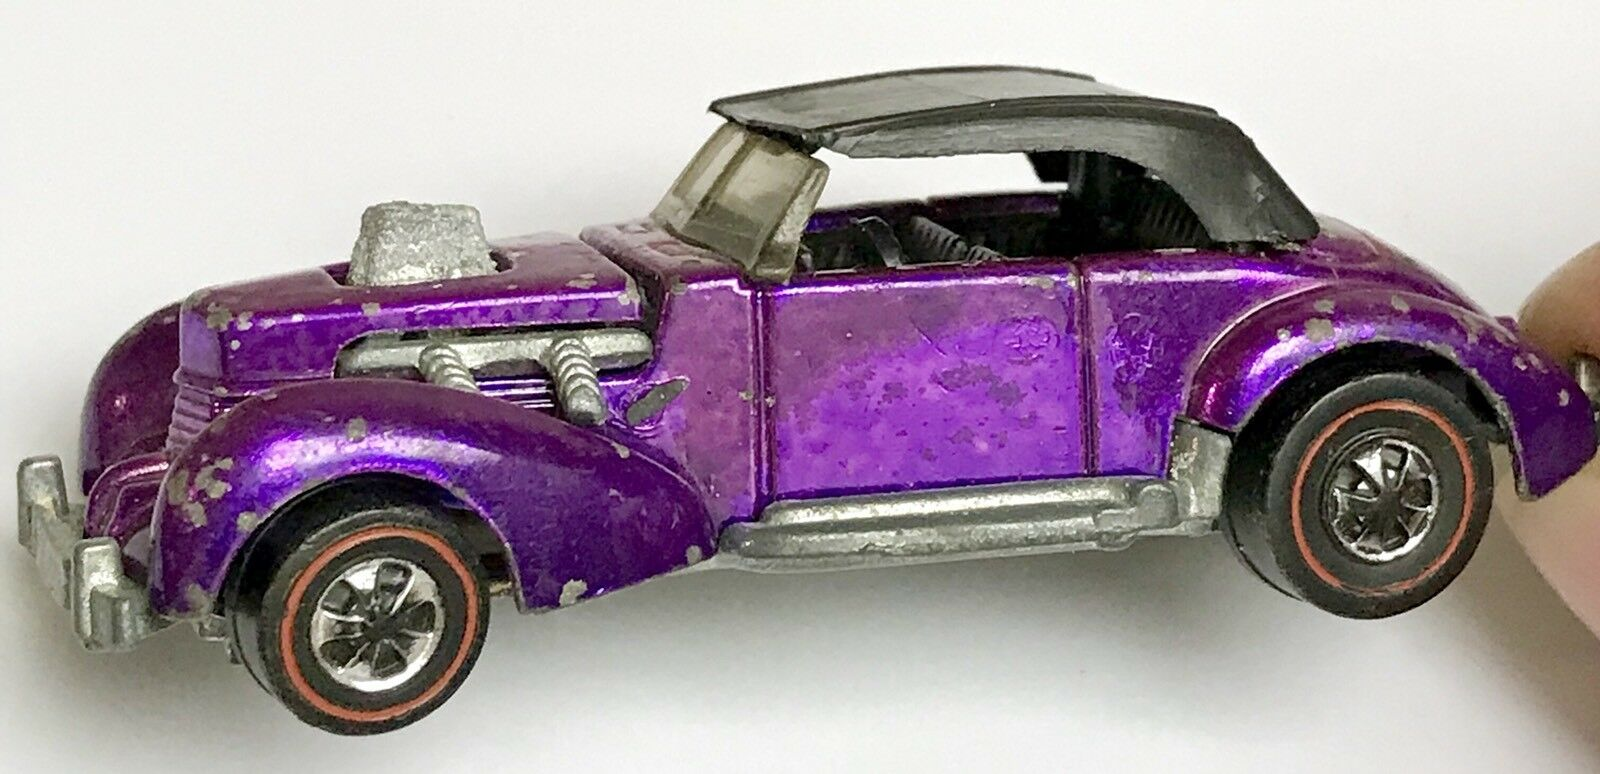 Berry lila us - klassiker mit 1970 hot wheels rotline farbe.